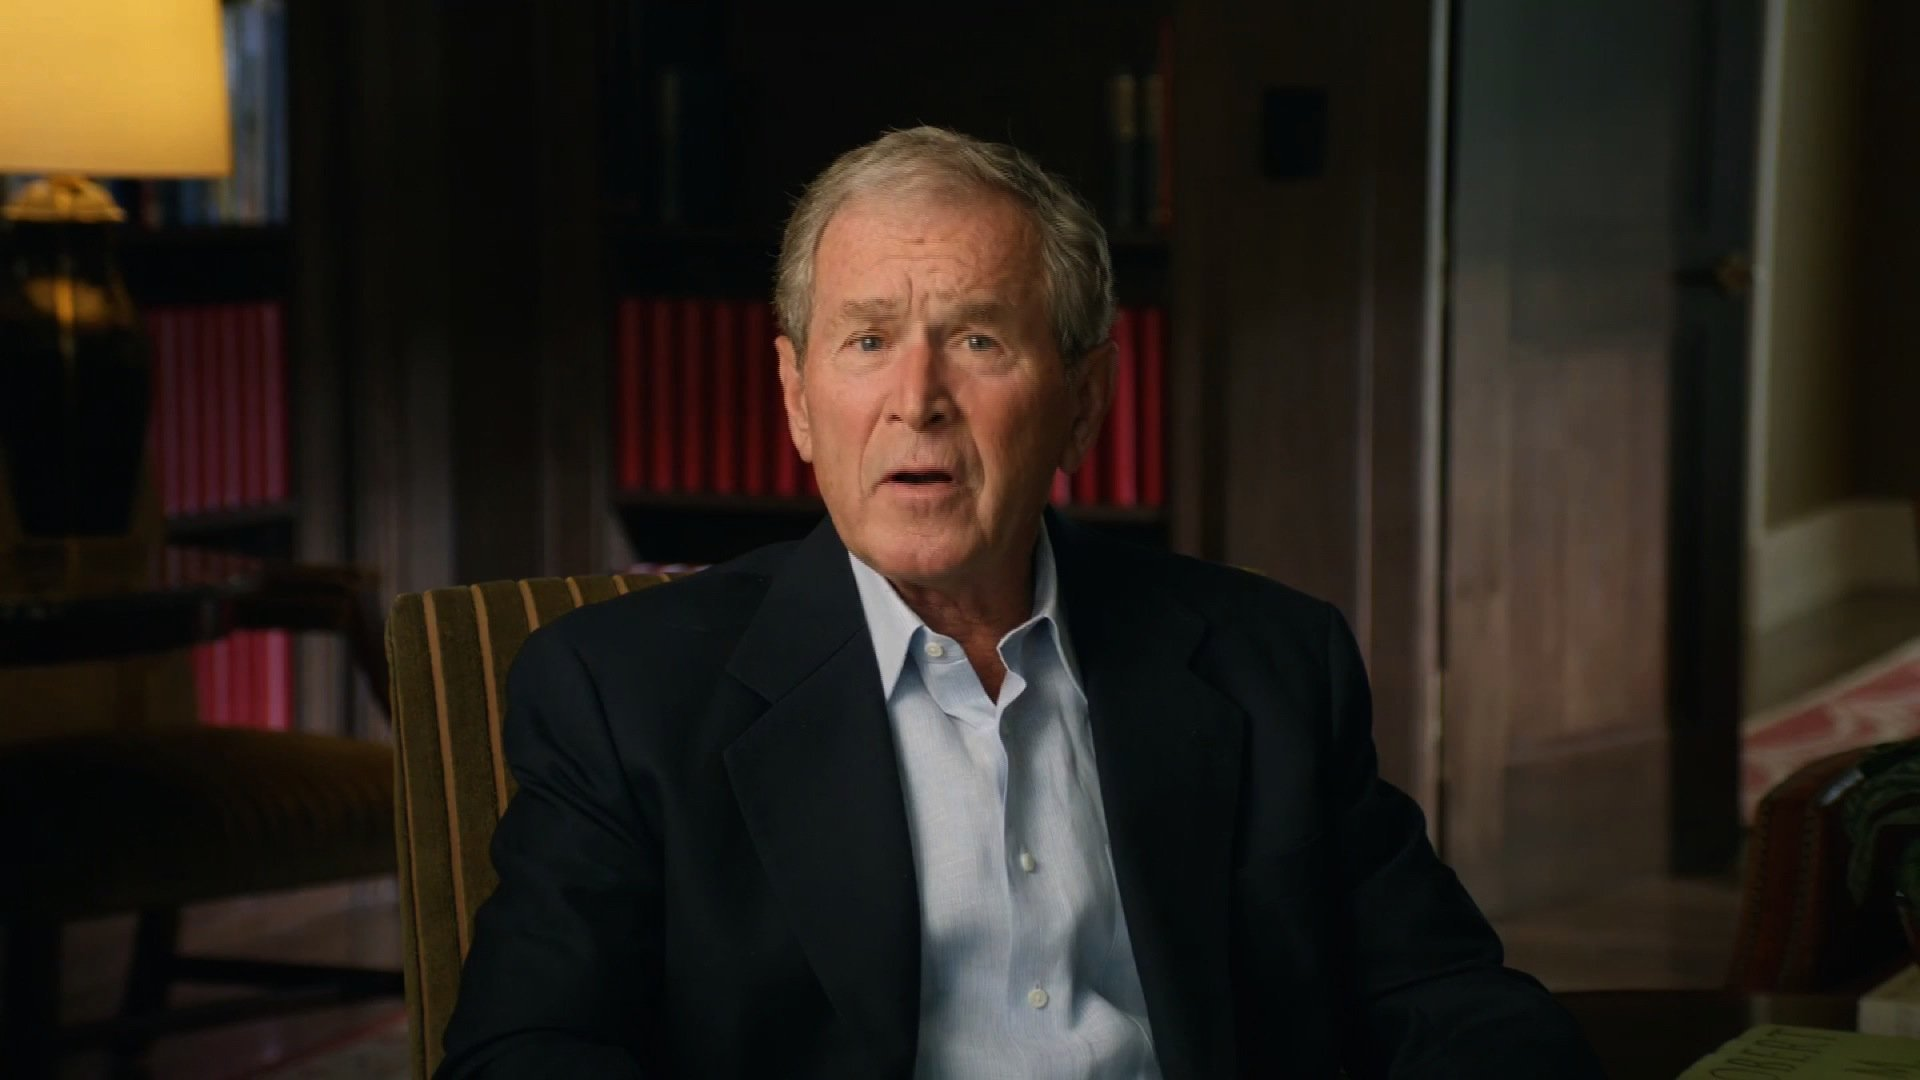 All five living former US presidents-- former Presidents George Bush, Bill Clinton, Jimmy Carter, George H.W. Bush and Barack Obama -- appeared in a video and asked Americans to respond to the devastation wrought by the hurricane.